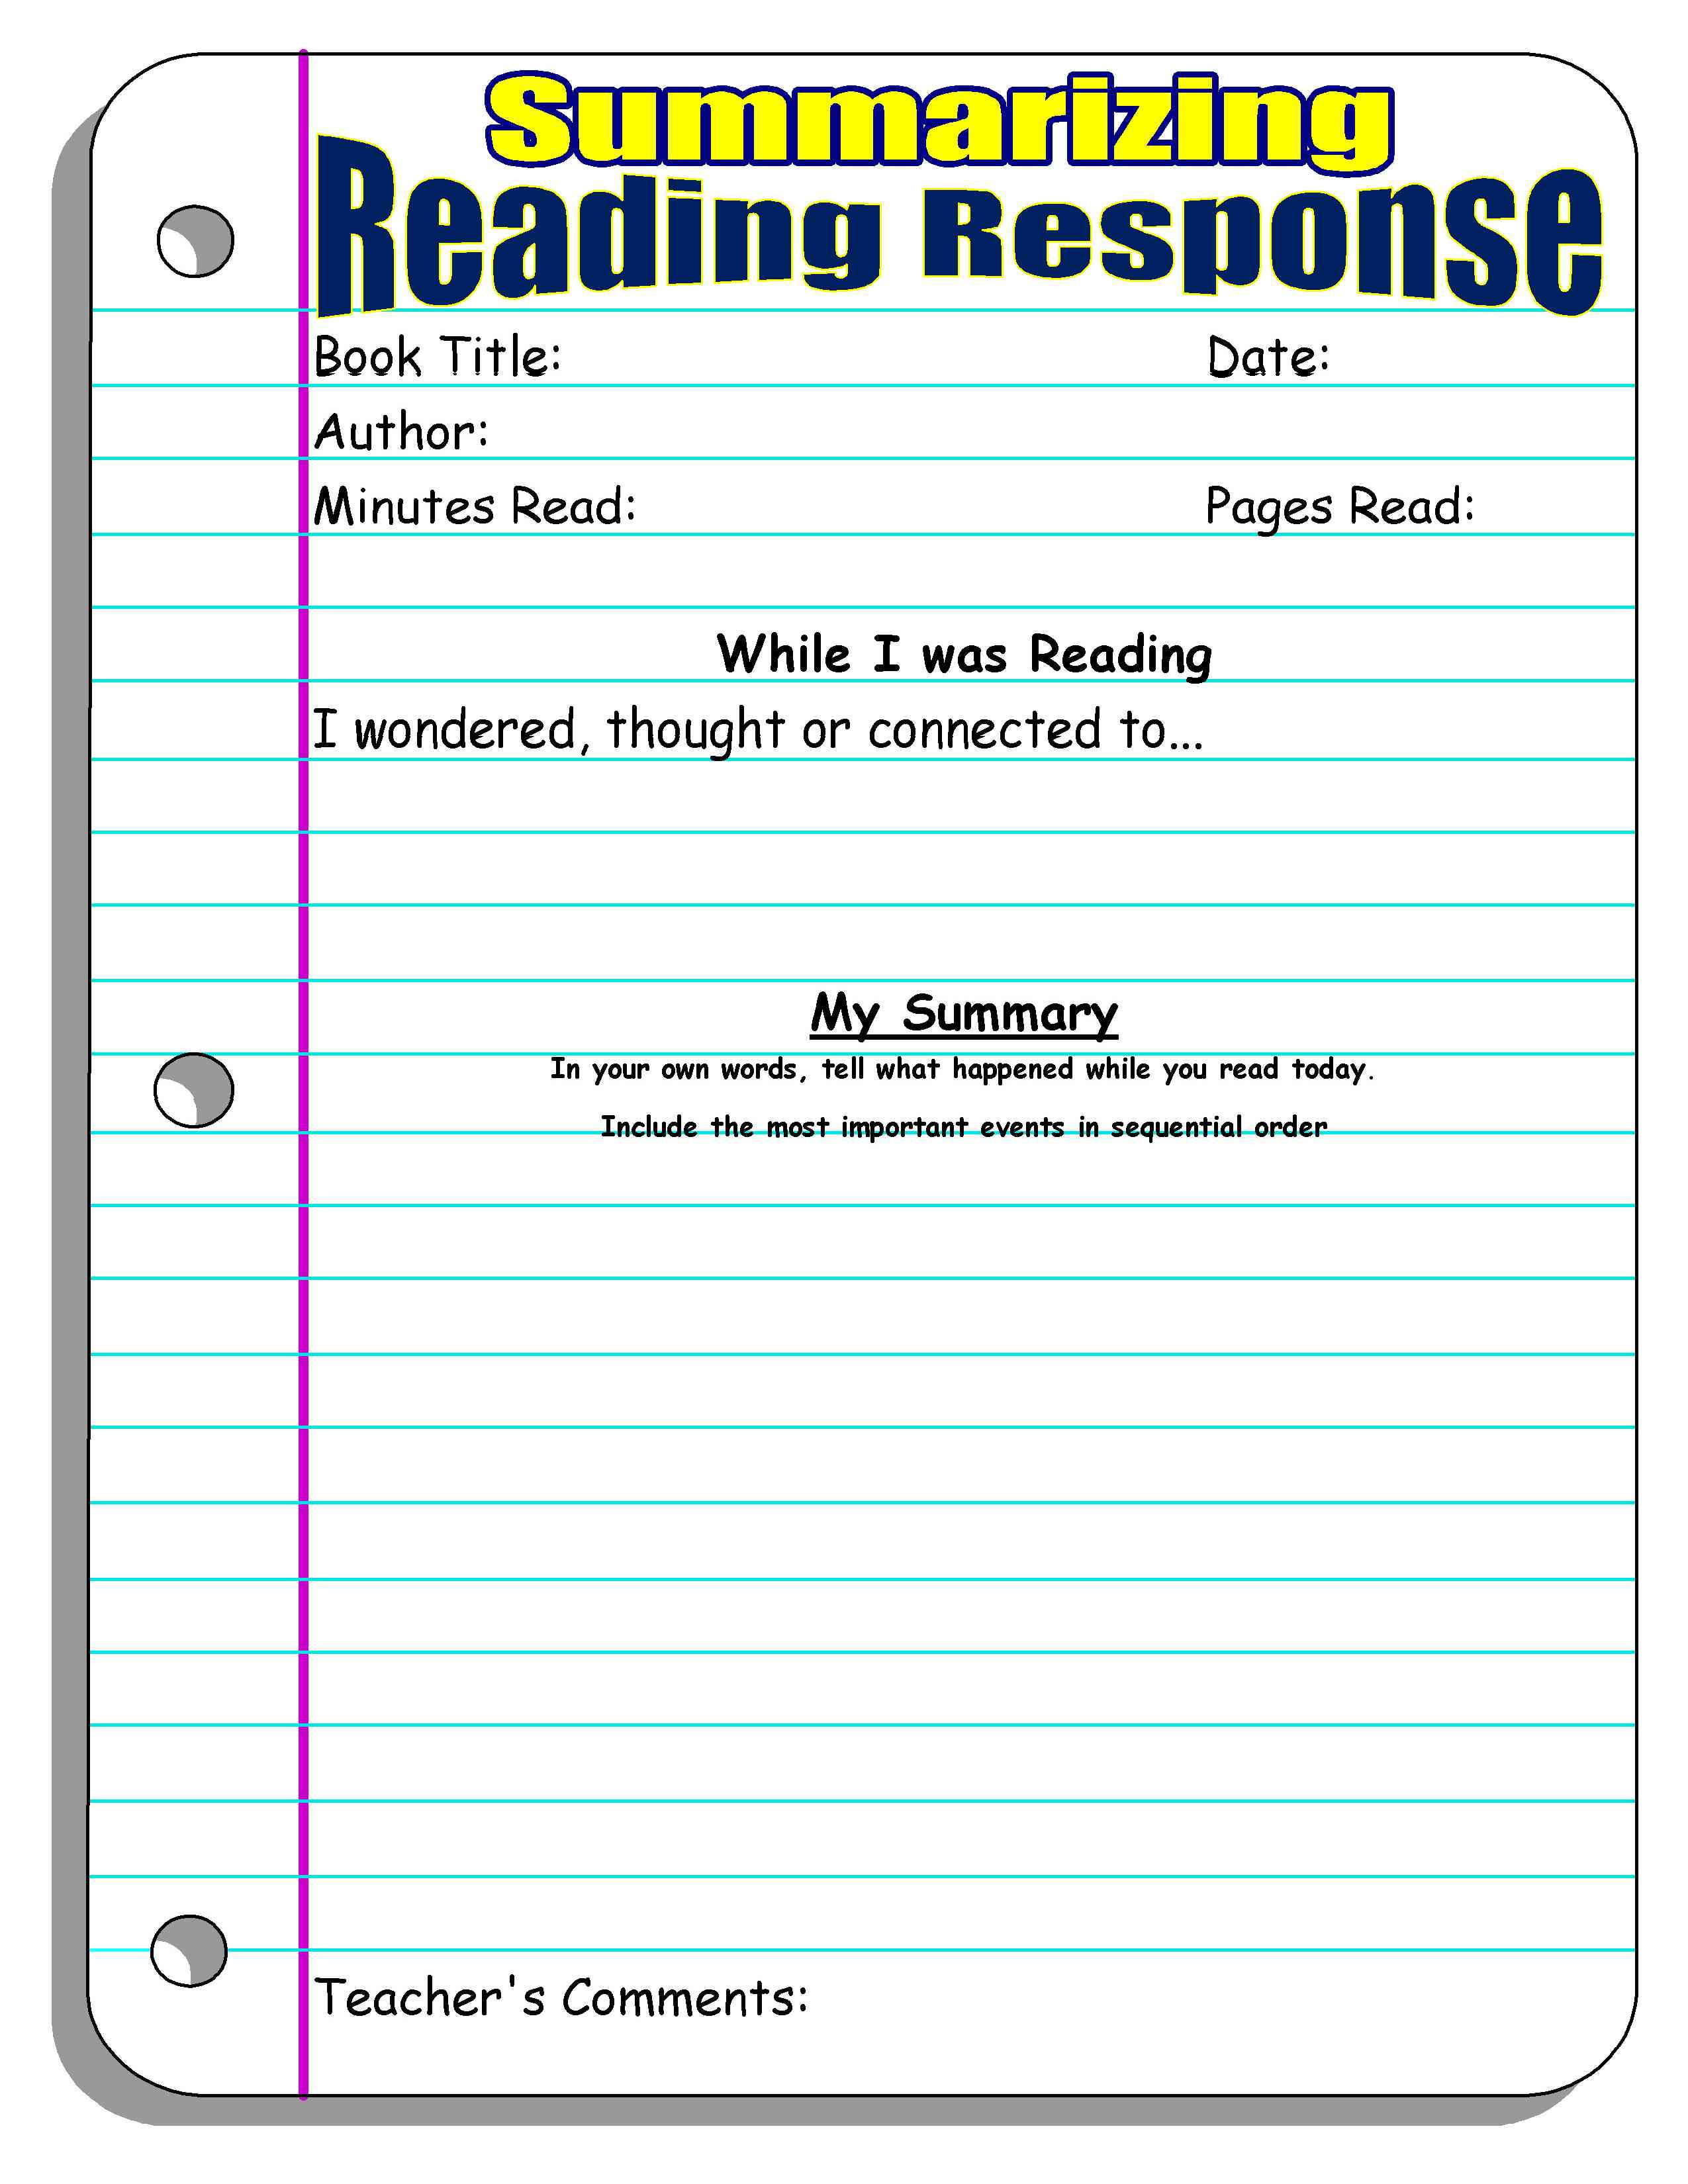 Summarizing Worksheet 4th Grade Reading Response forms and Graphic organizers